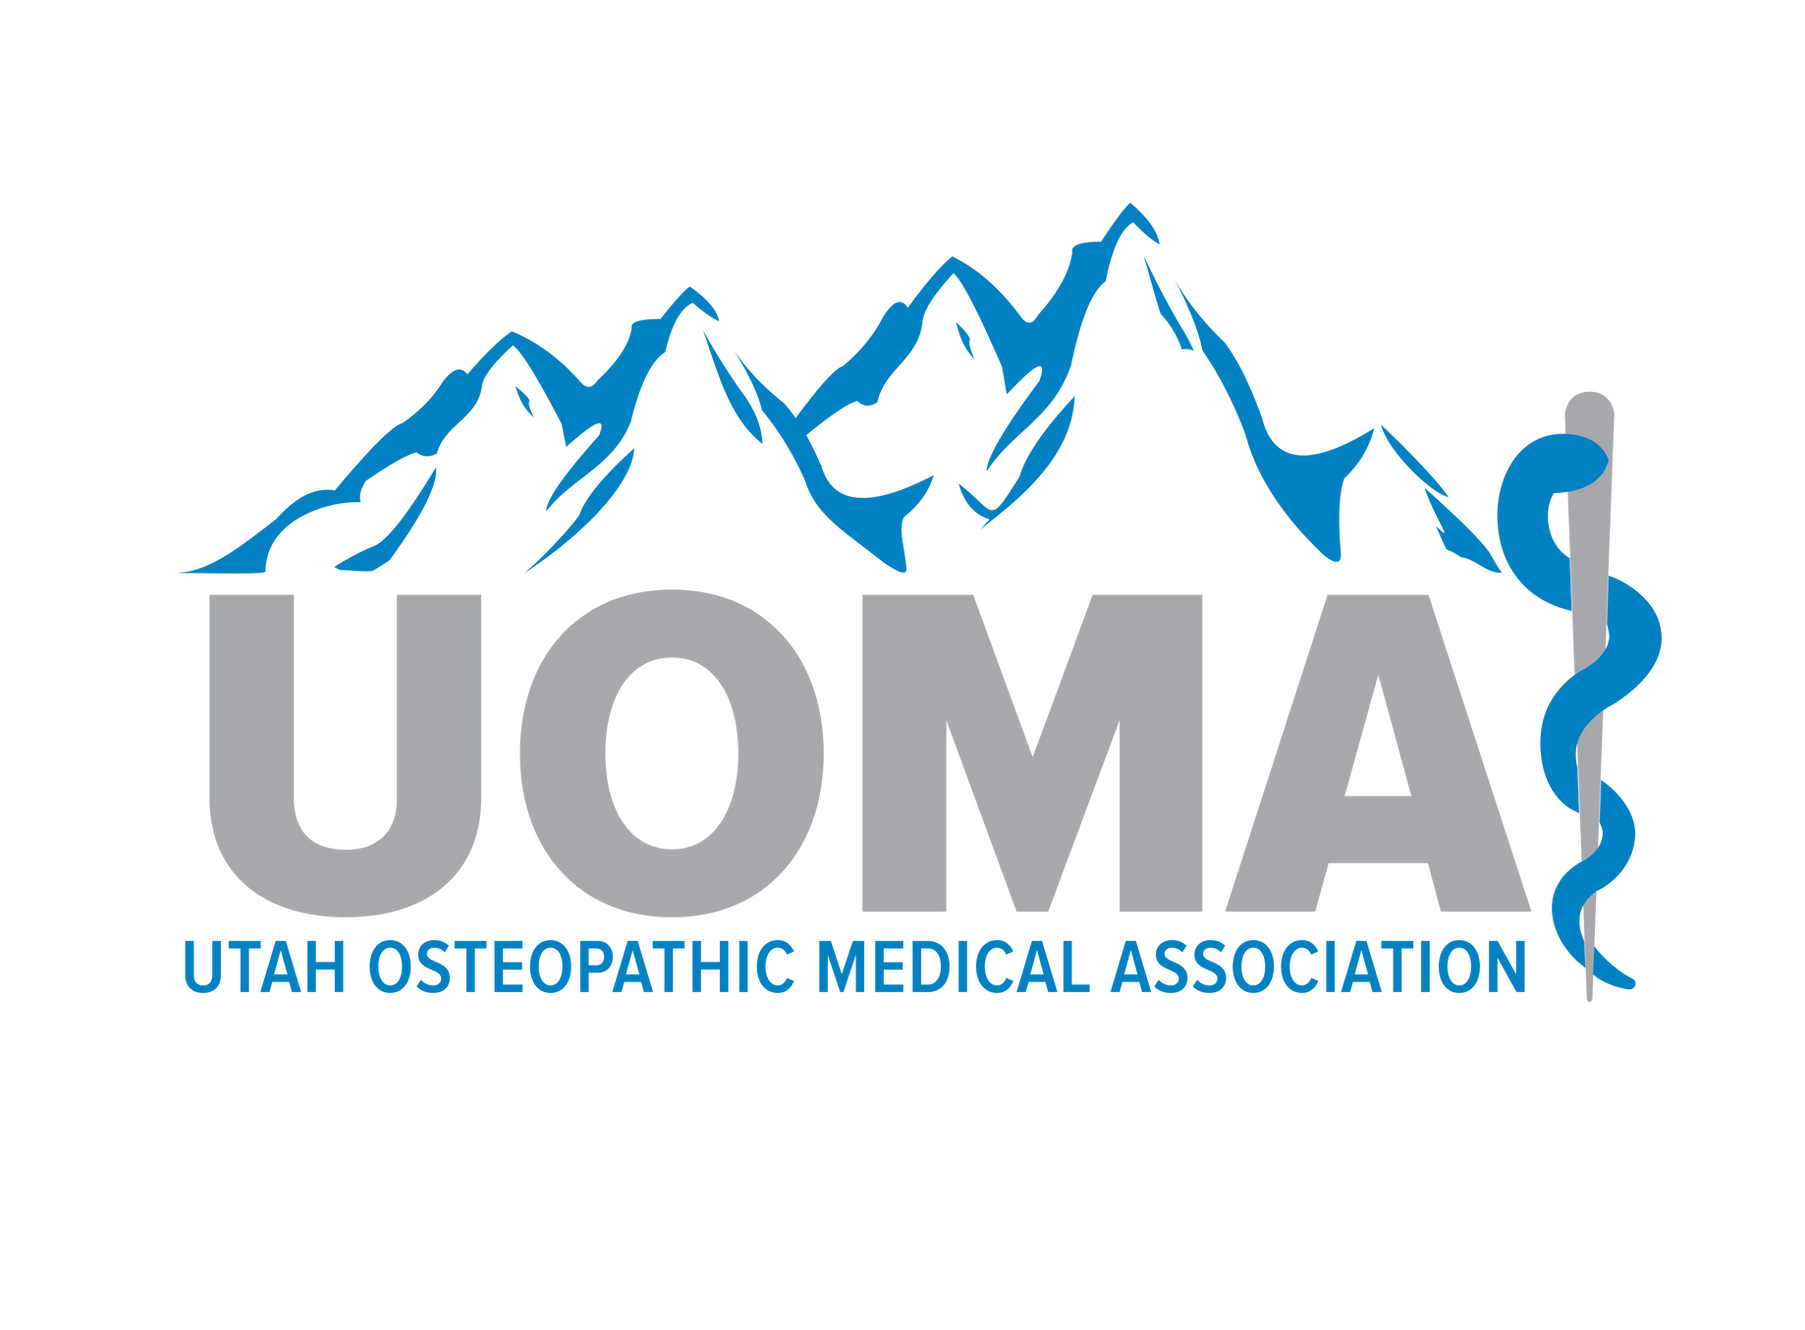 RVUCOM-SU | Utah Osteopathic Medical Association | Leaders